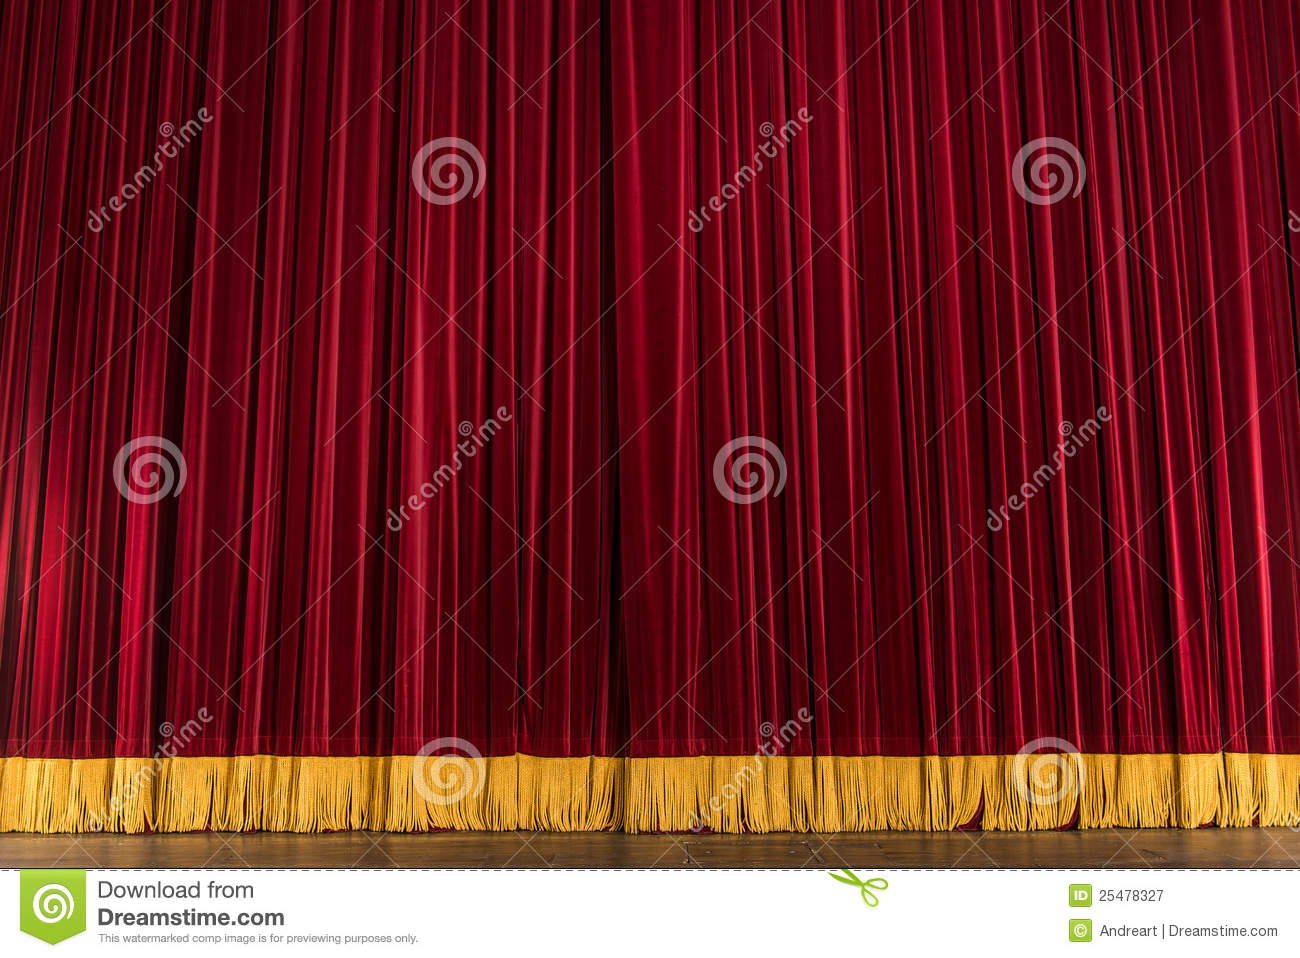 Open theater drapes or stage curtains royalty free stock image image - Theater Stage Curtain Royalty Free Stock Photography